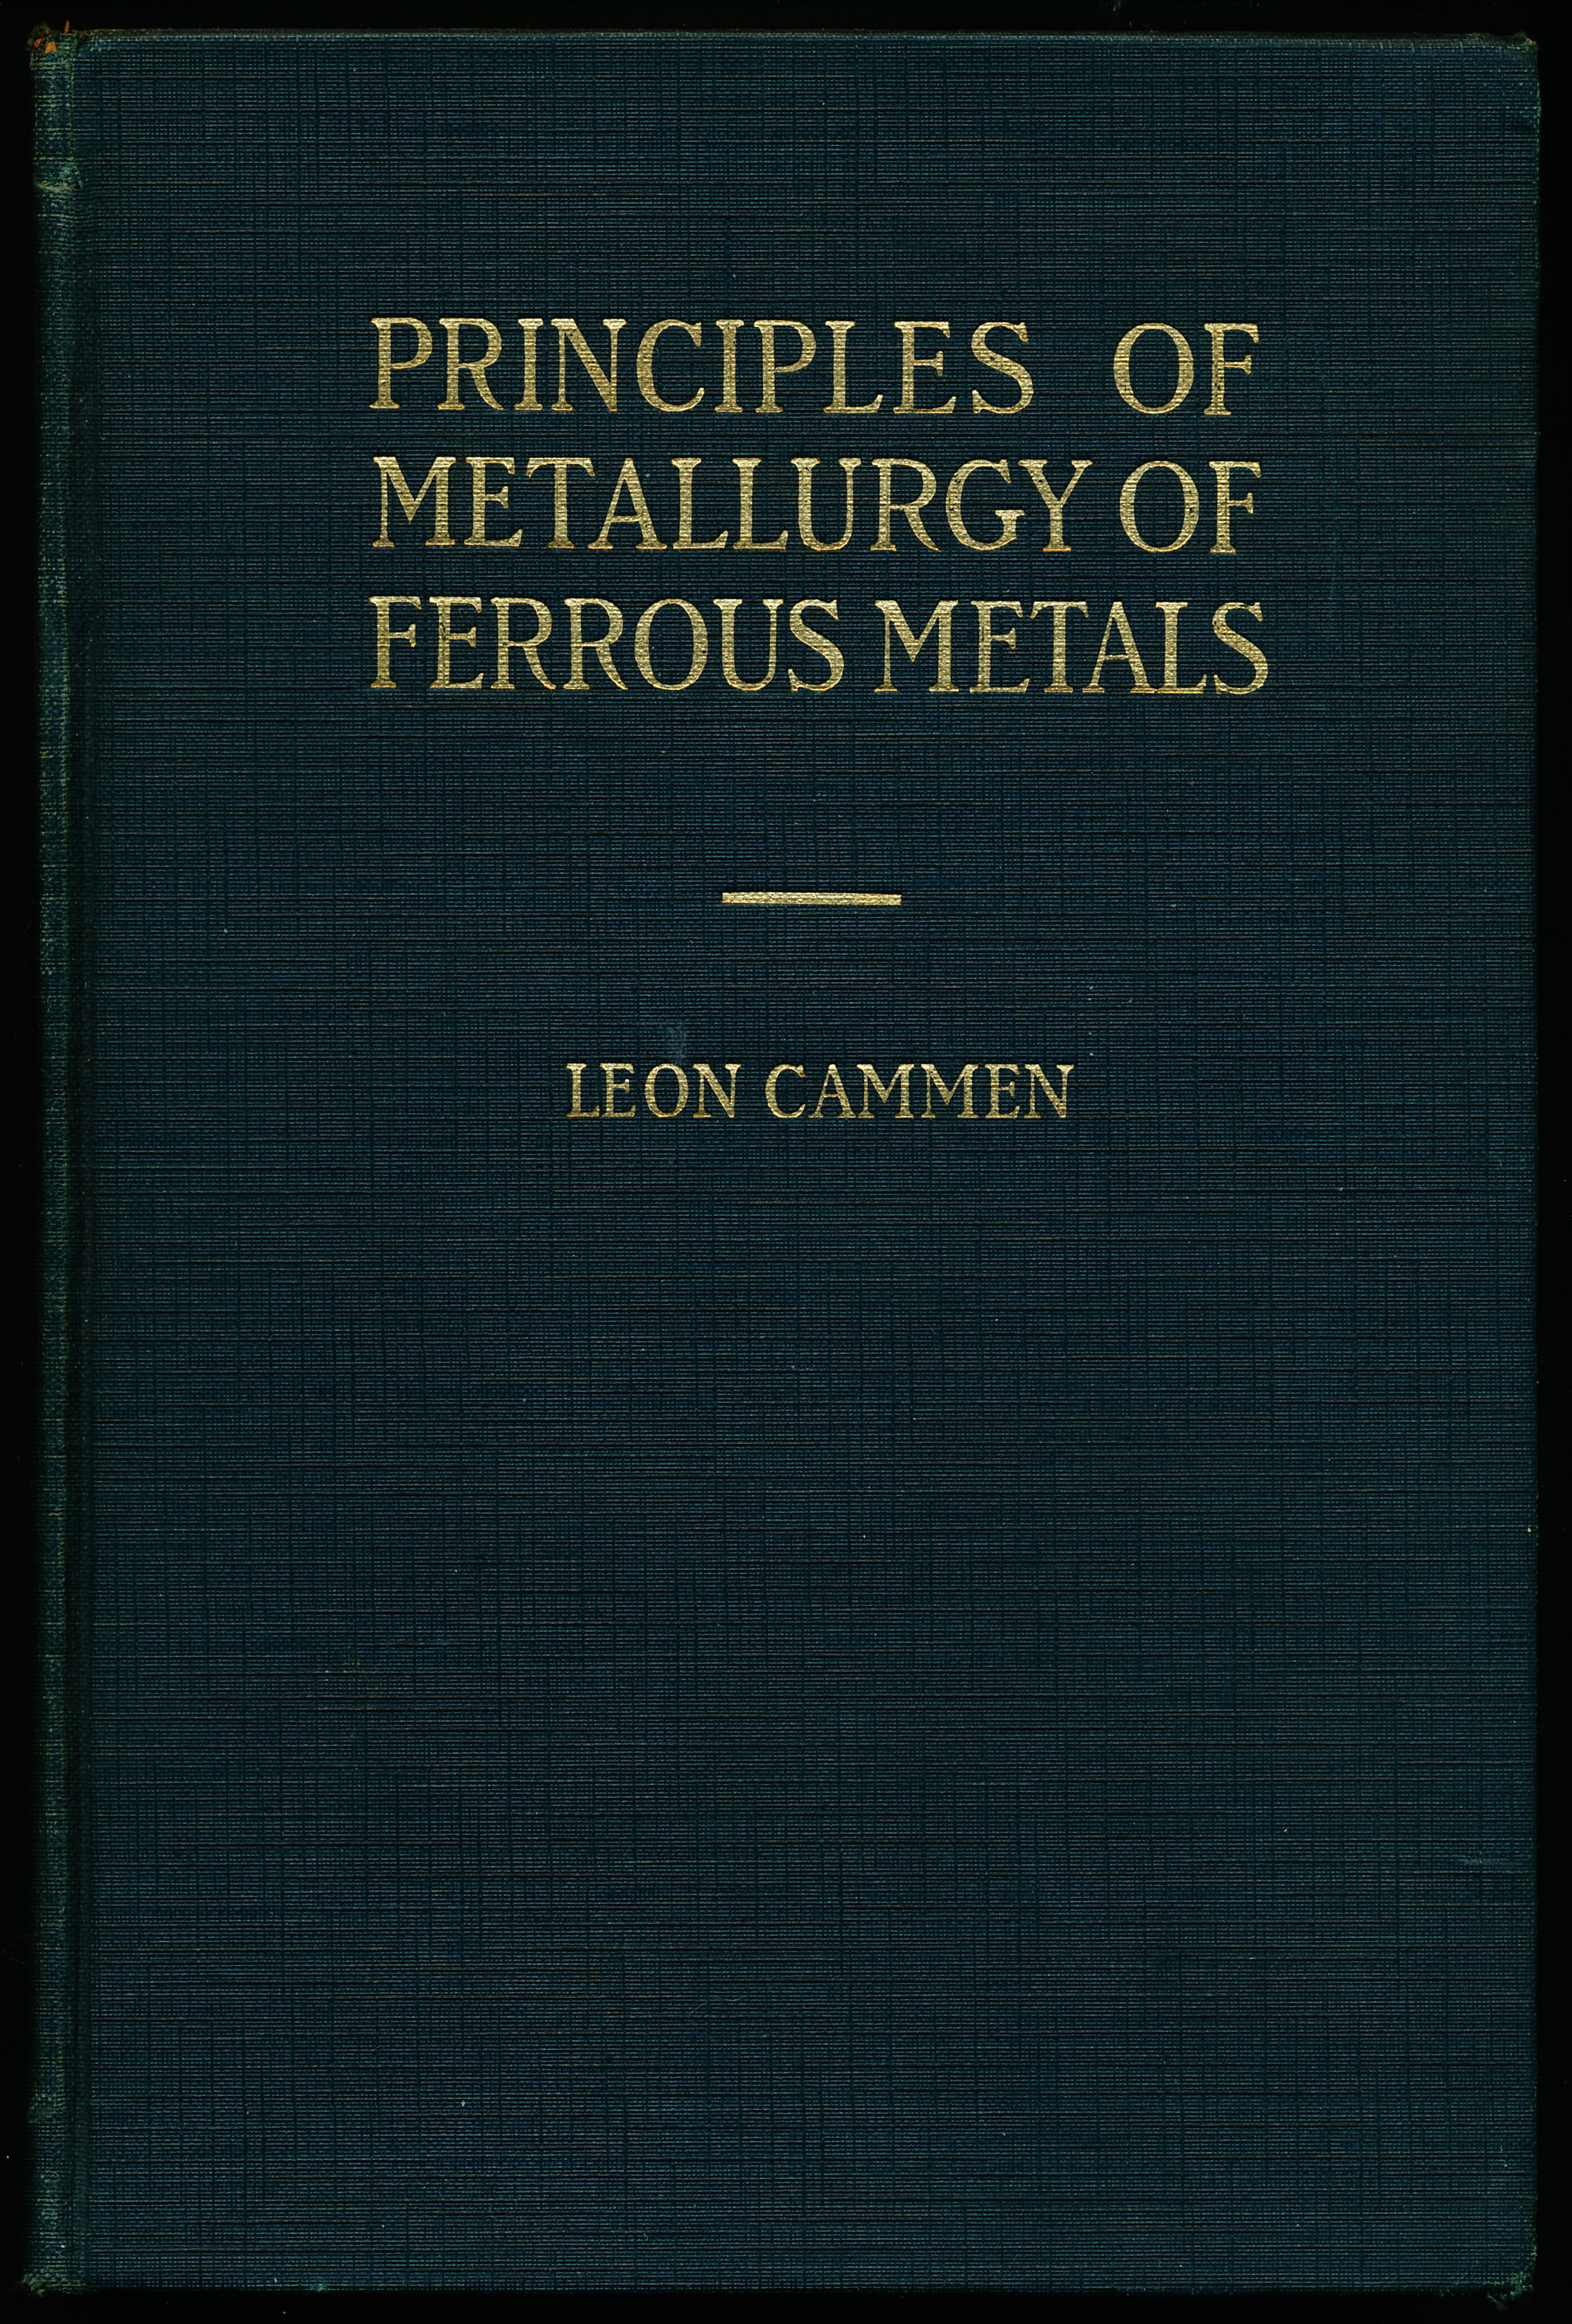 Image for PRINCIPLES OF METALLURGY OF FERROUS METALS. A Manual For Mechanical Engineers